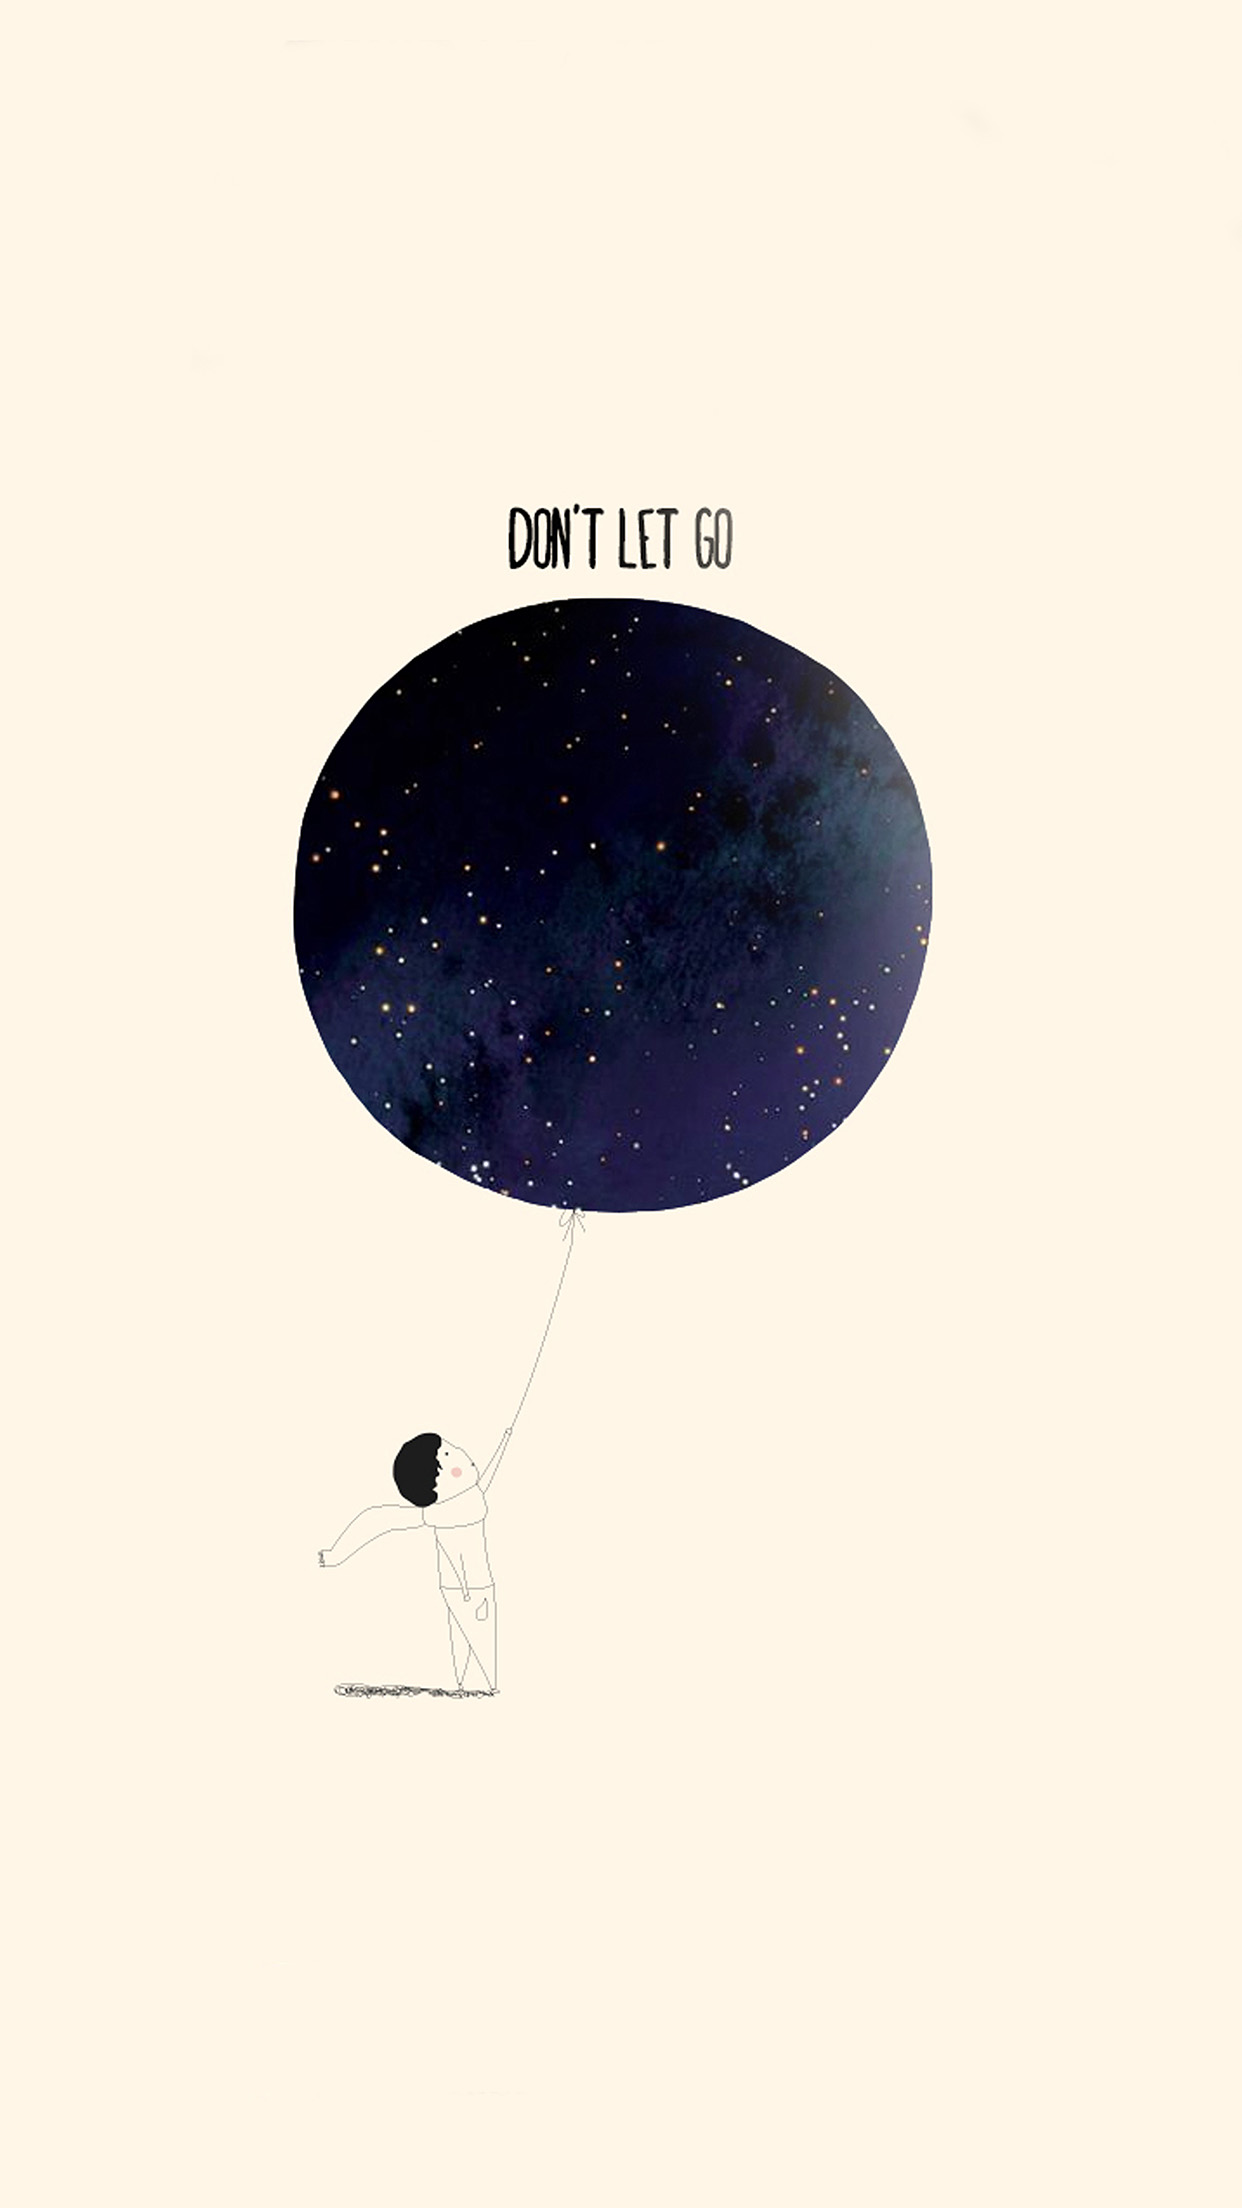 Ap32 dont let go art cute illustration wallpaper for Going minimalist